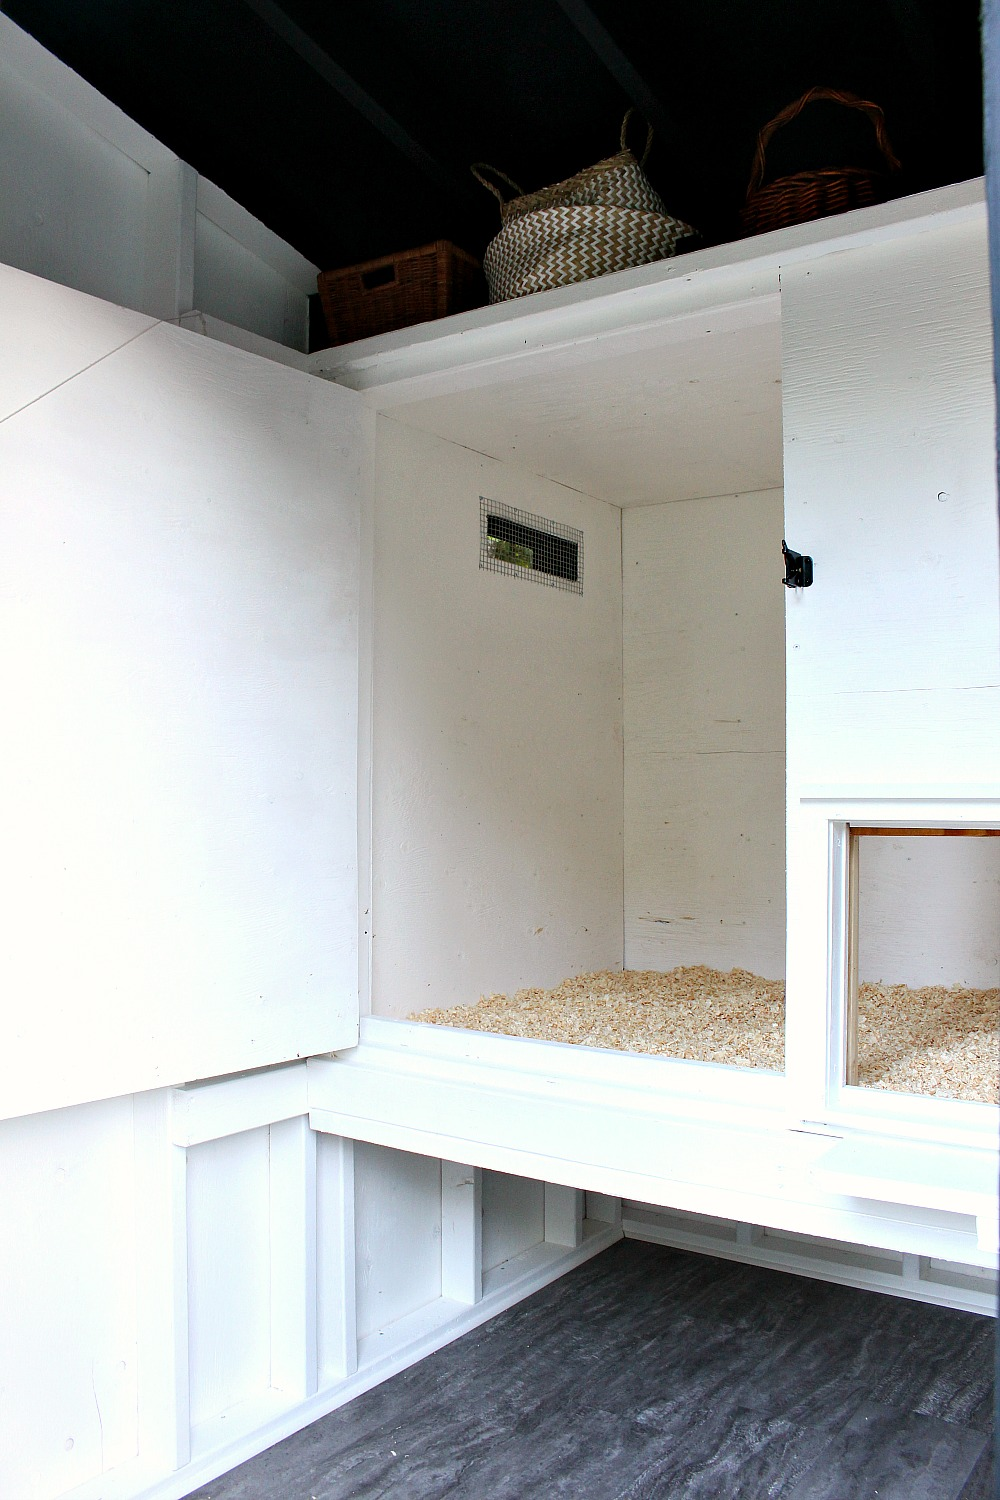 Urban Chicken Coop Design with Storage